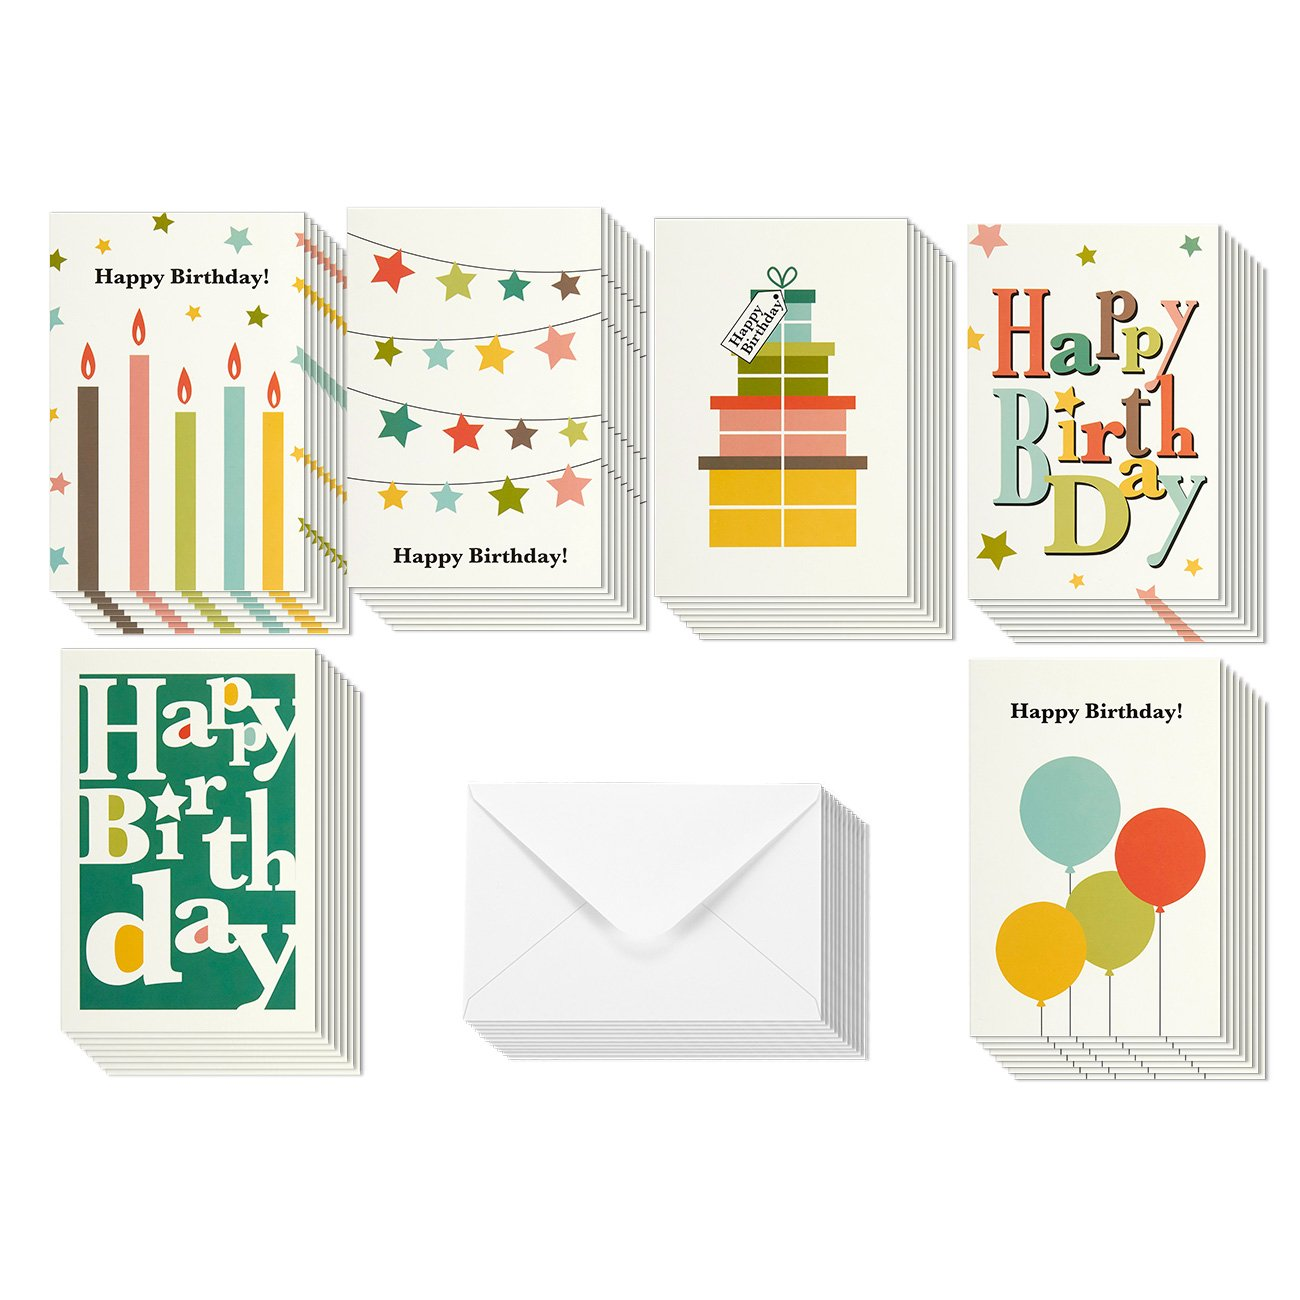 Birthday Card - 48-Pack Birthday Cards Box Set, Happy Birthday Cards – Bright Party Designs Birthday Card Bulk, Envelopes Included, 4 x 6 inches